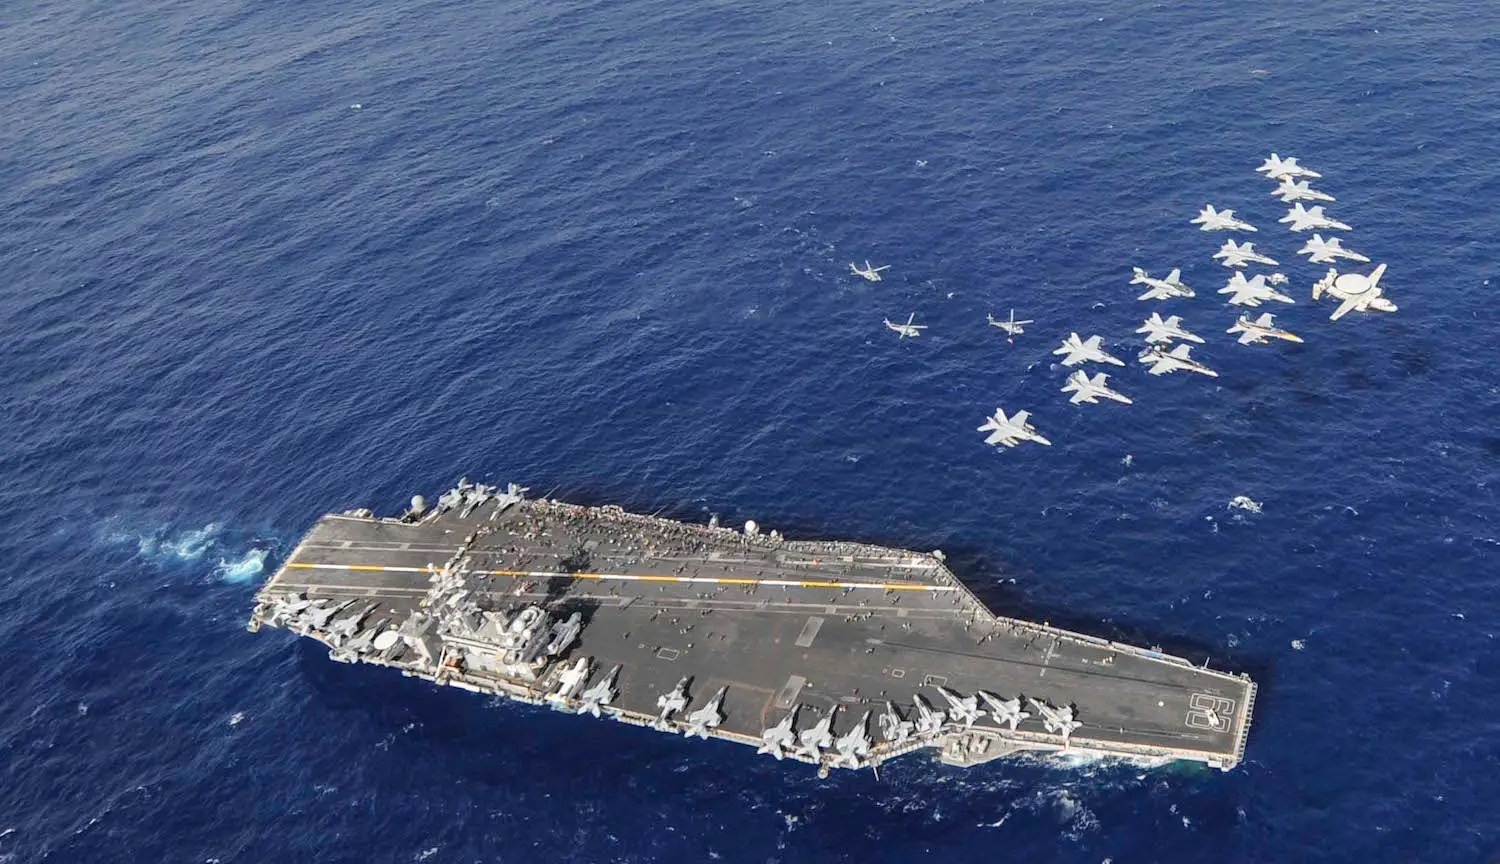 The USS Nimitz, the lead ship in the Nimitz class, visited Sri Lanka in October — the first time a US aircraft carrier had visited the dock Colombo over 30 years.